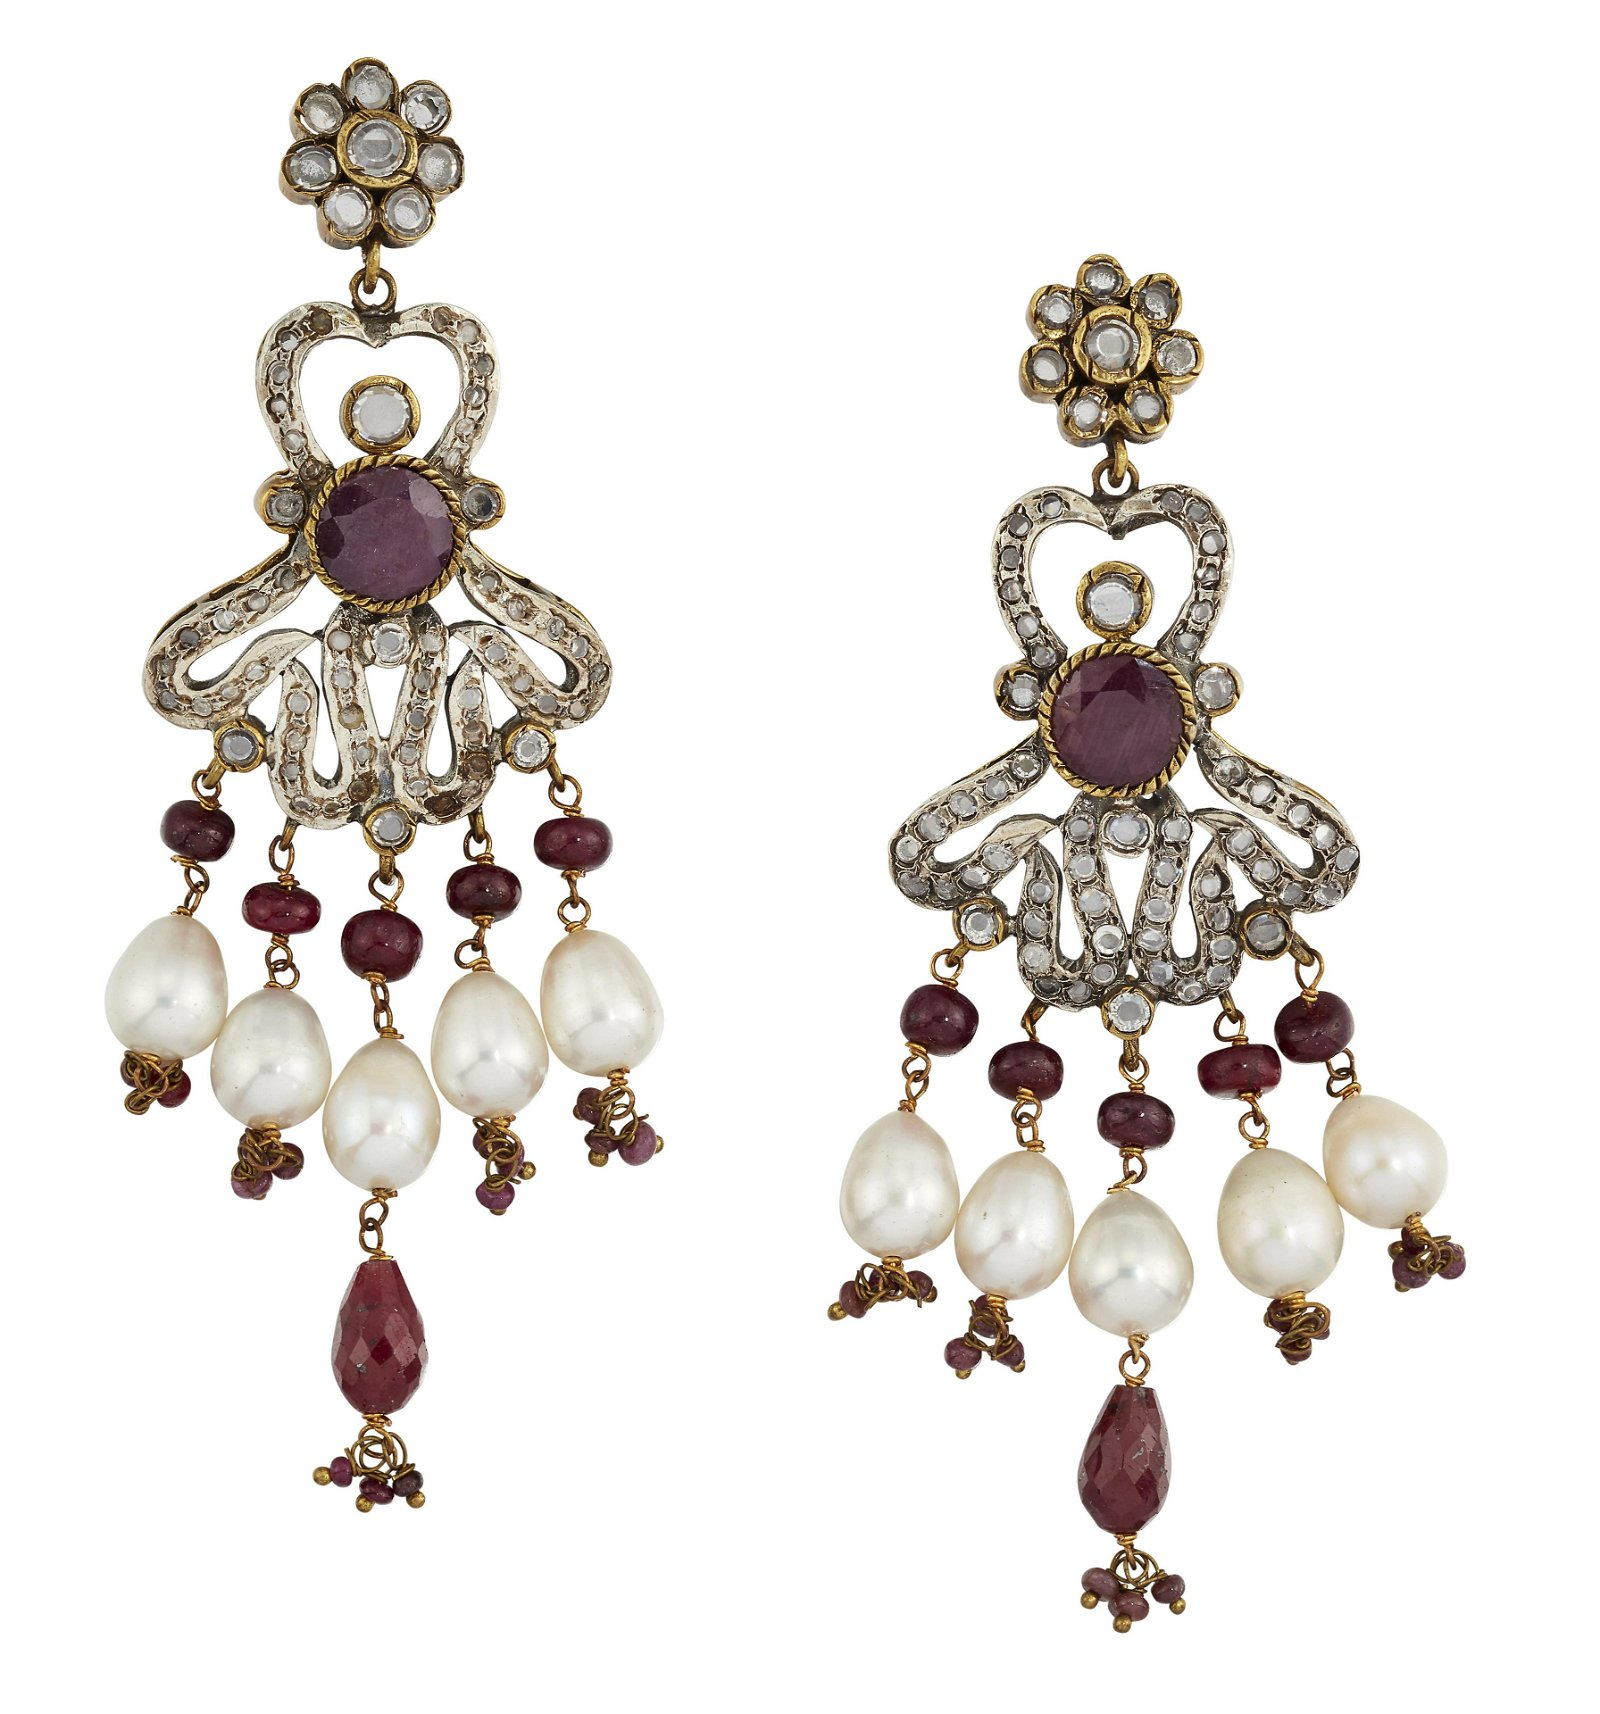 A PAIR OF RUBY, WHITE HARDSTONE AND CULTURED PEARL